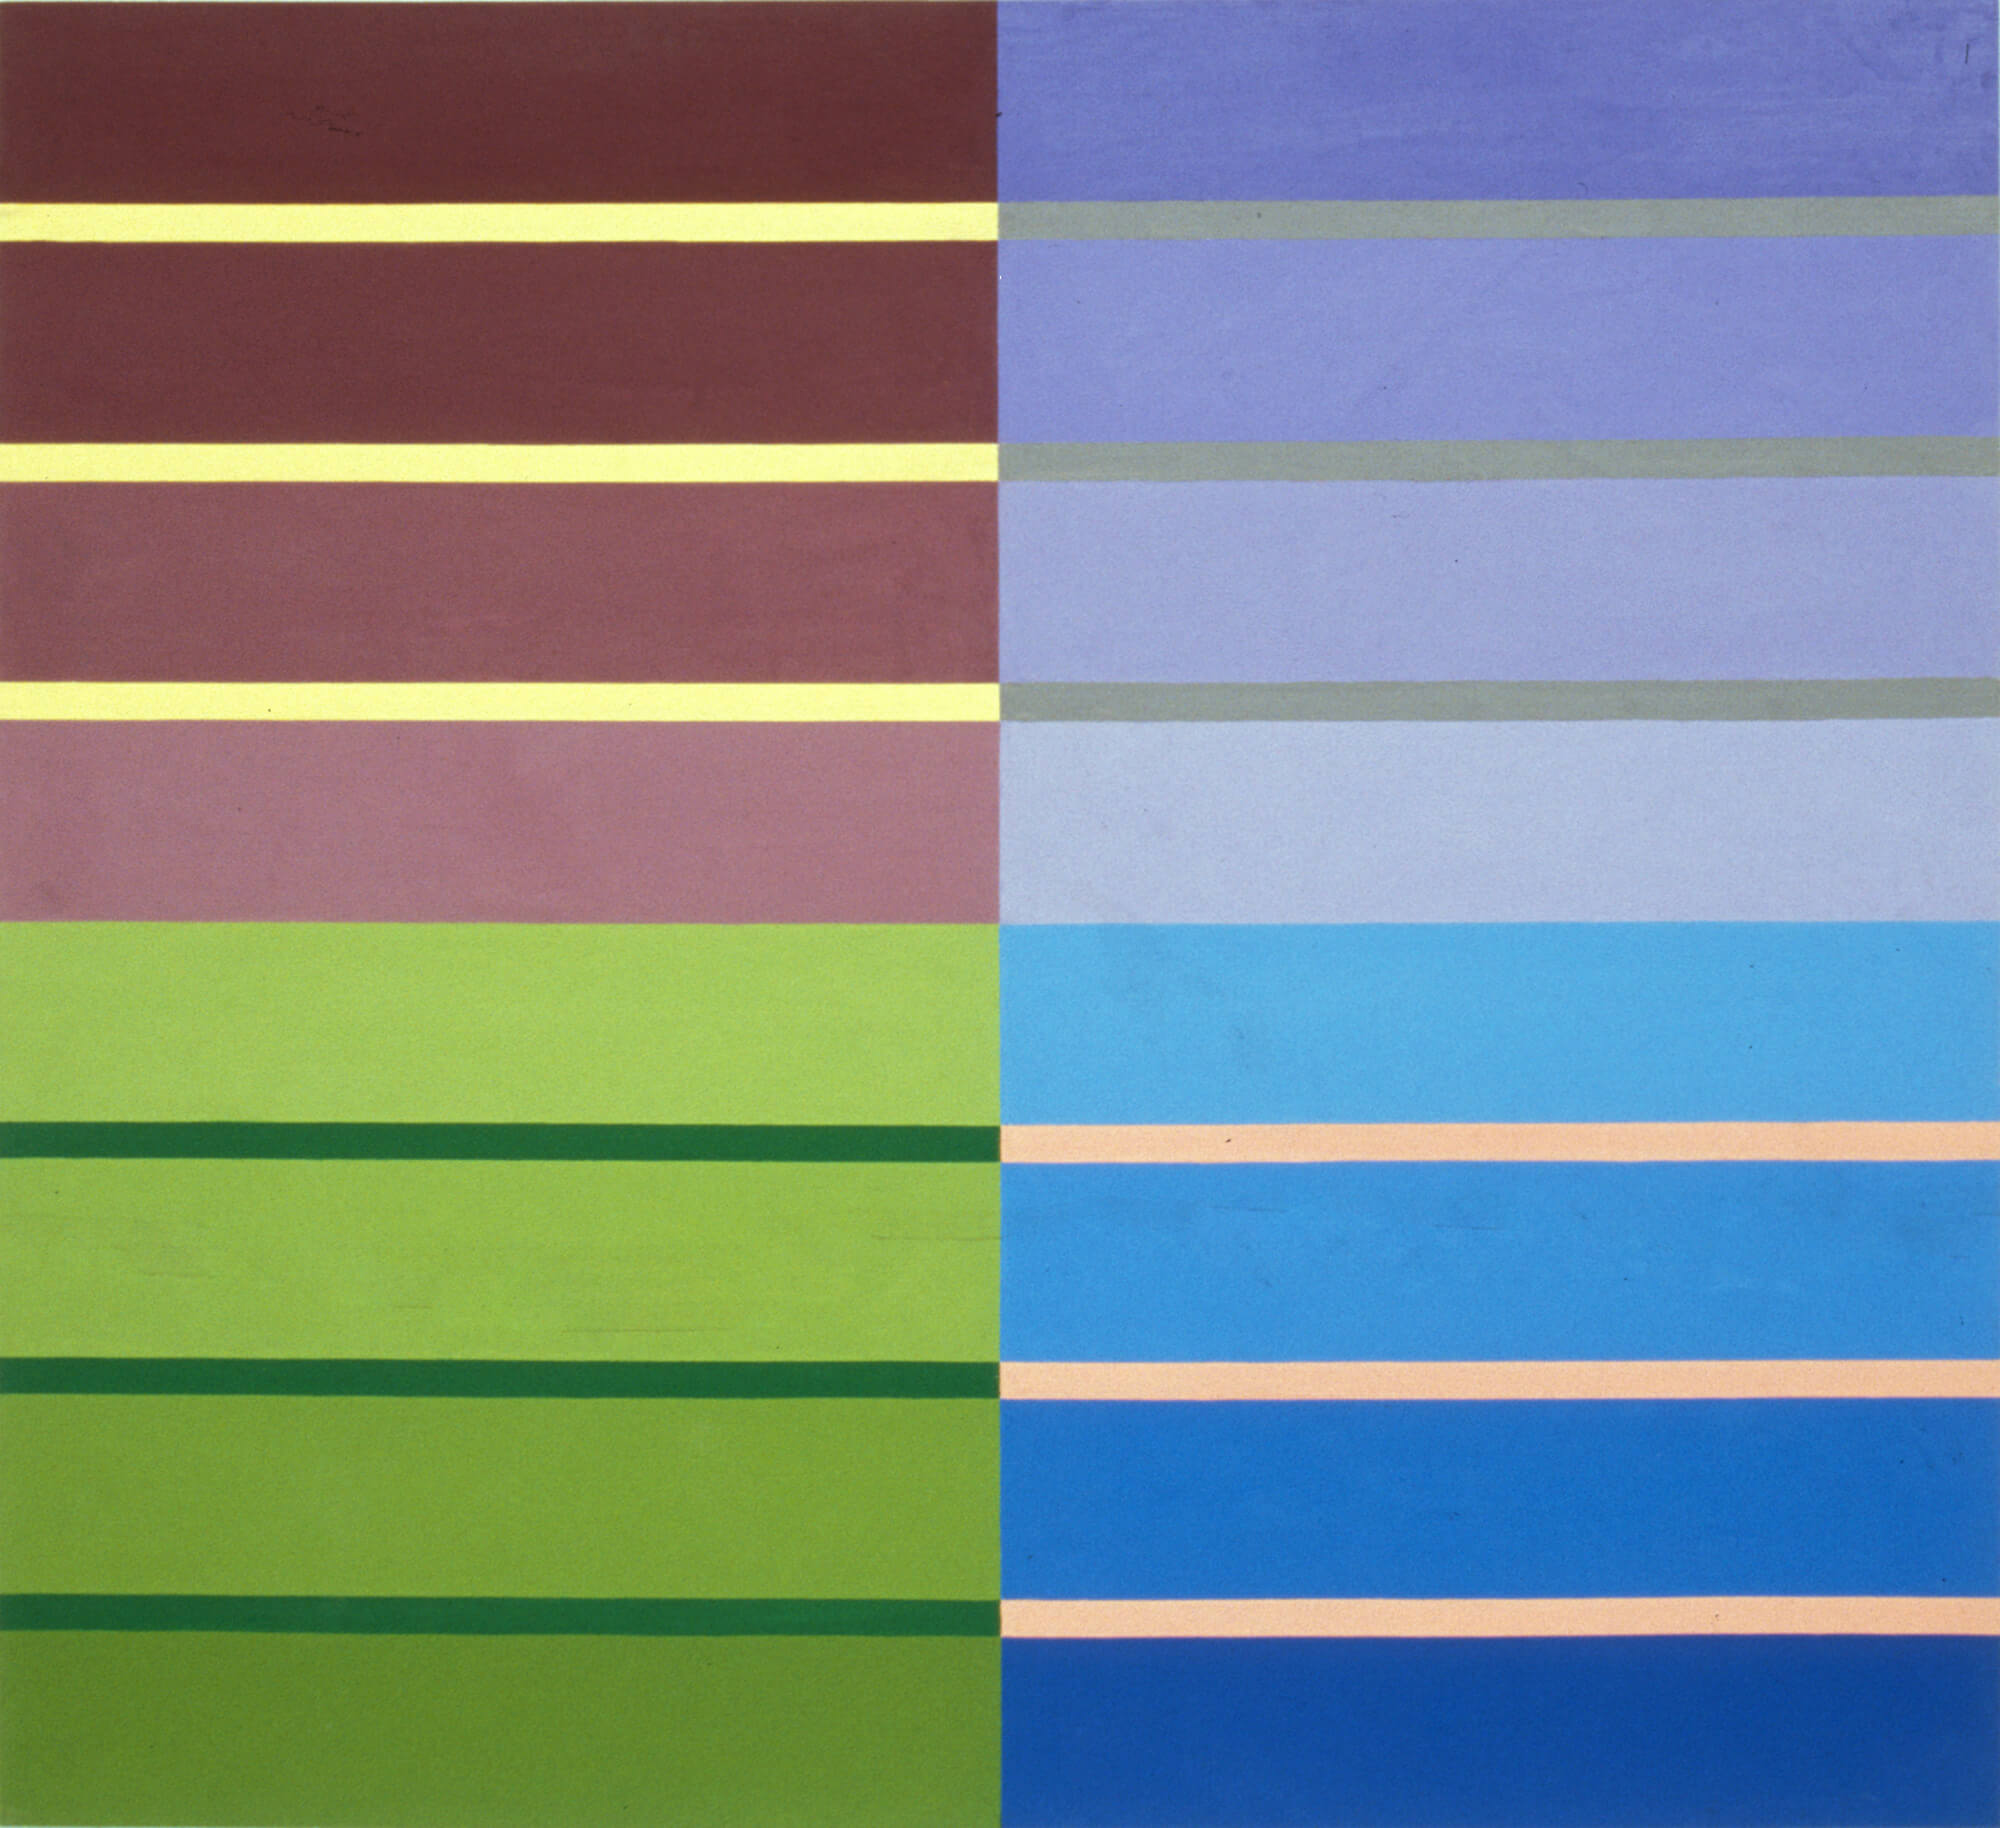 Linda Linda Vista, 122 x 132 cm. Oil tempera on aluminum sheet, 2002